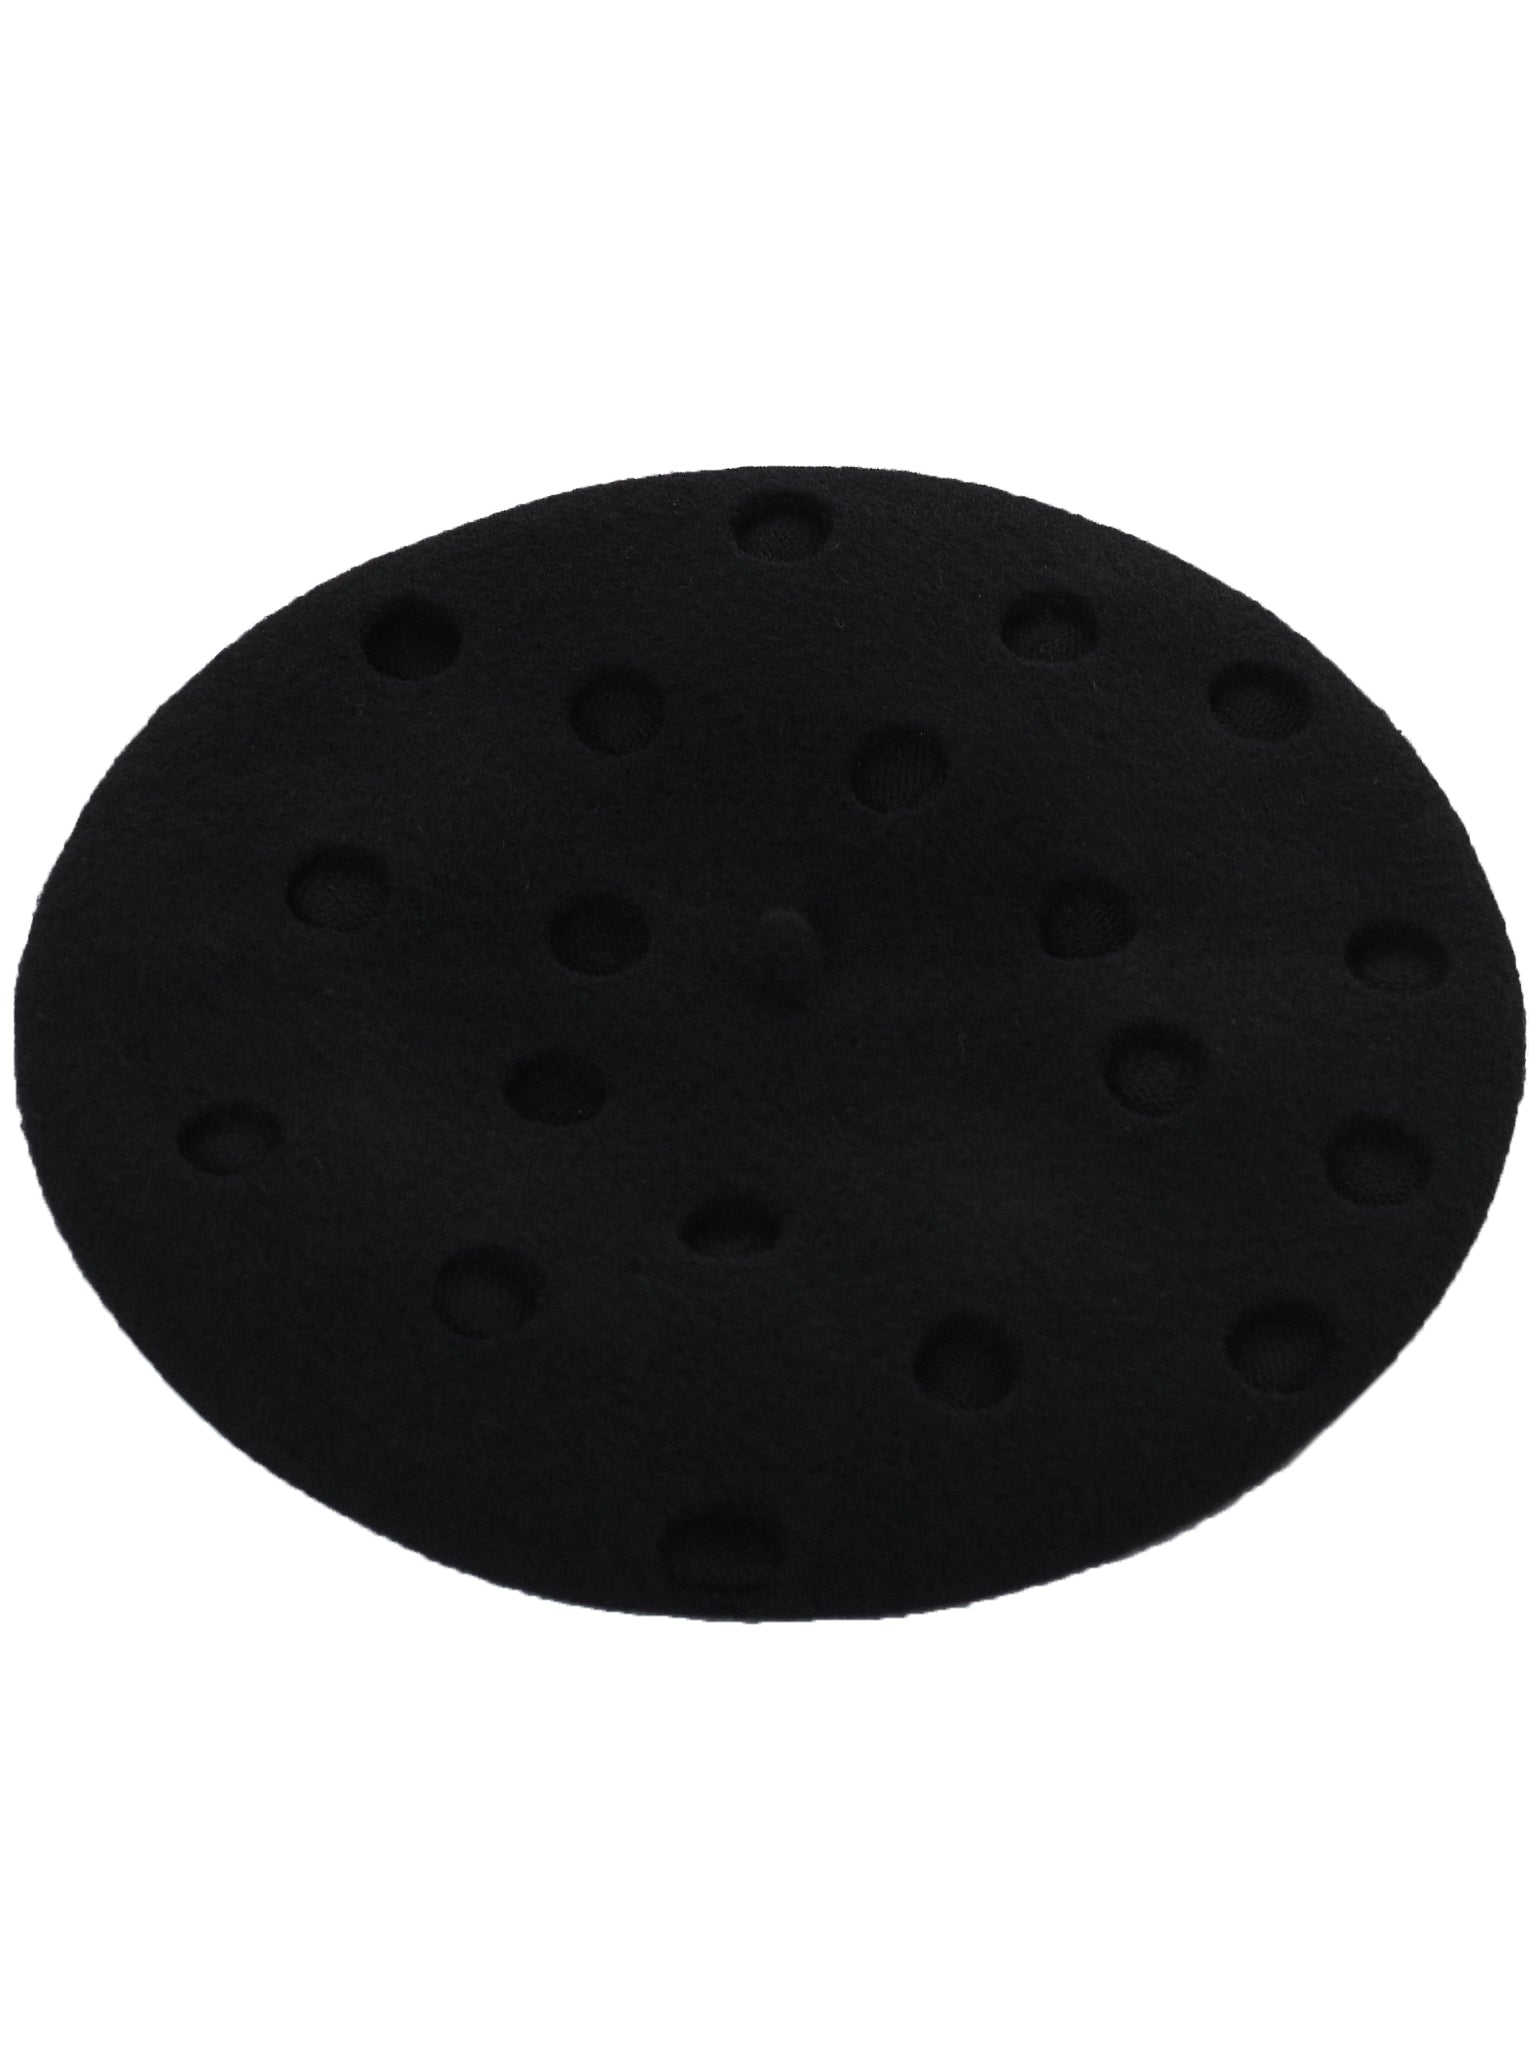 Polkadot Beret (993-FLYING-DUCK-PD11-BLACK)